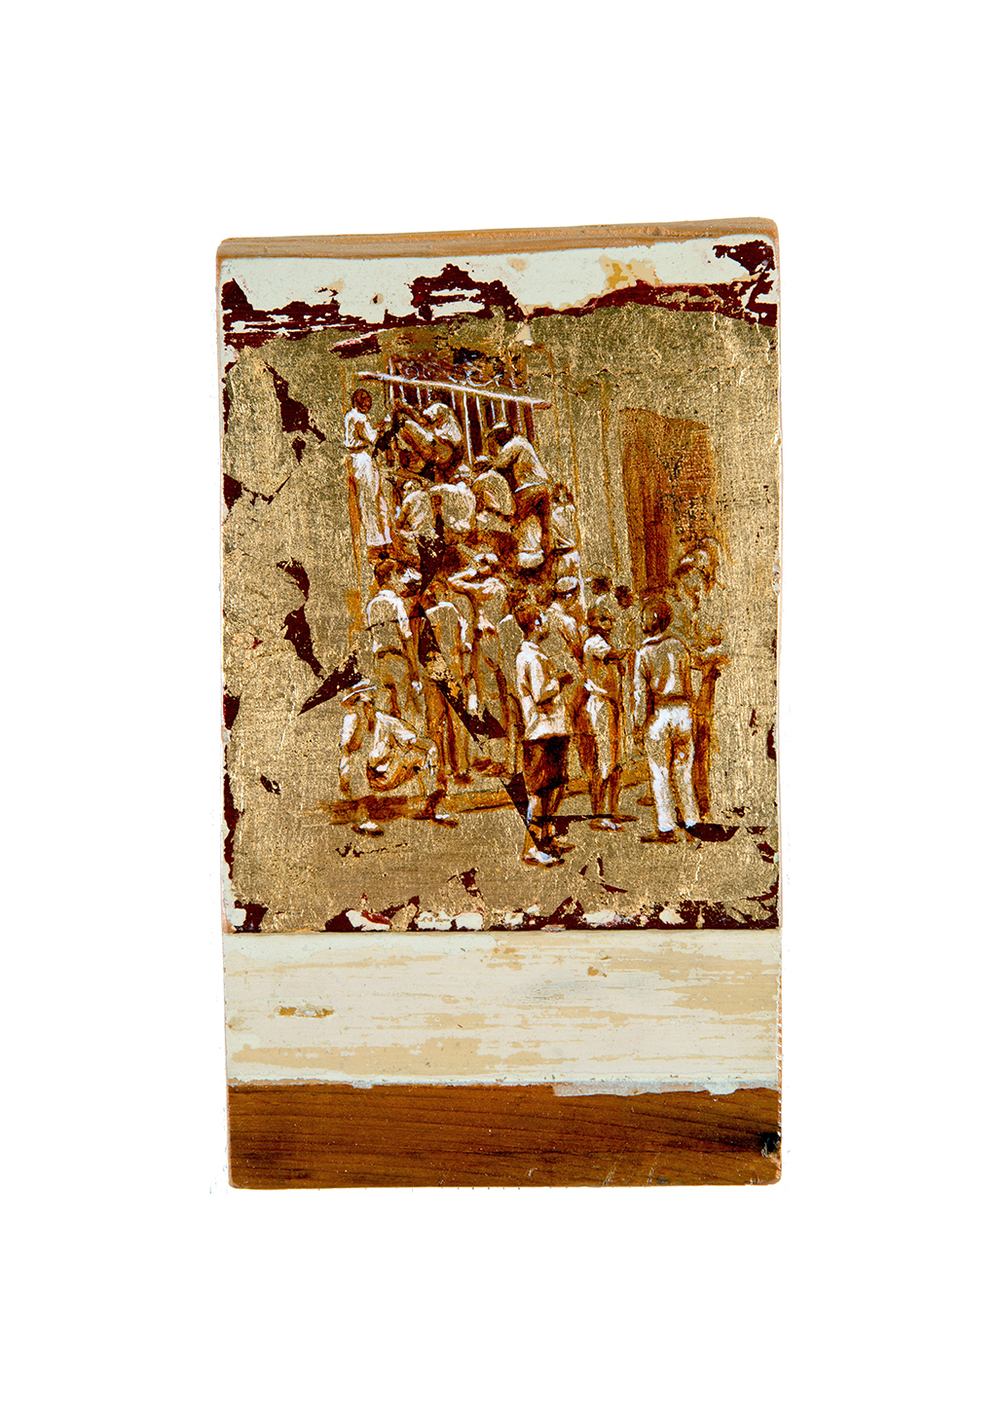 José Toirac,  Untitled Gold Leaf , 2009 Based on Walker Evans photographs of Cuba, 1933 Acrylic on laminated wood with gold leafing, 10-1/2 x 6 inches